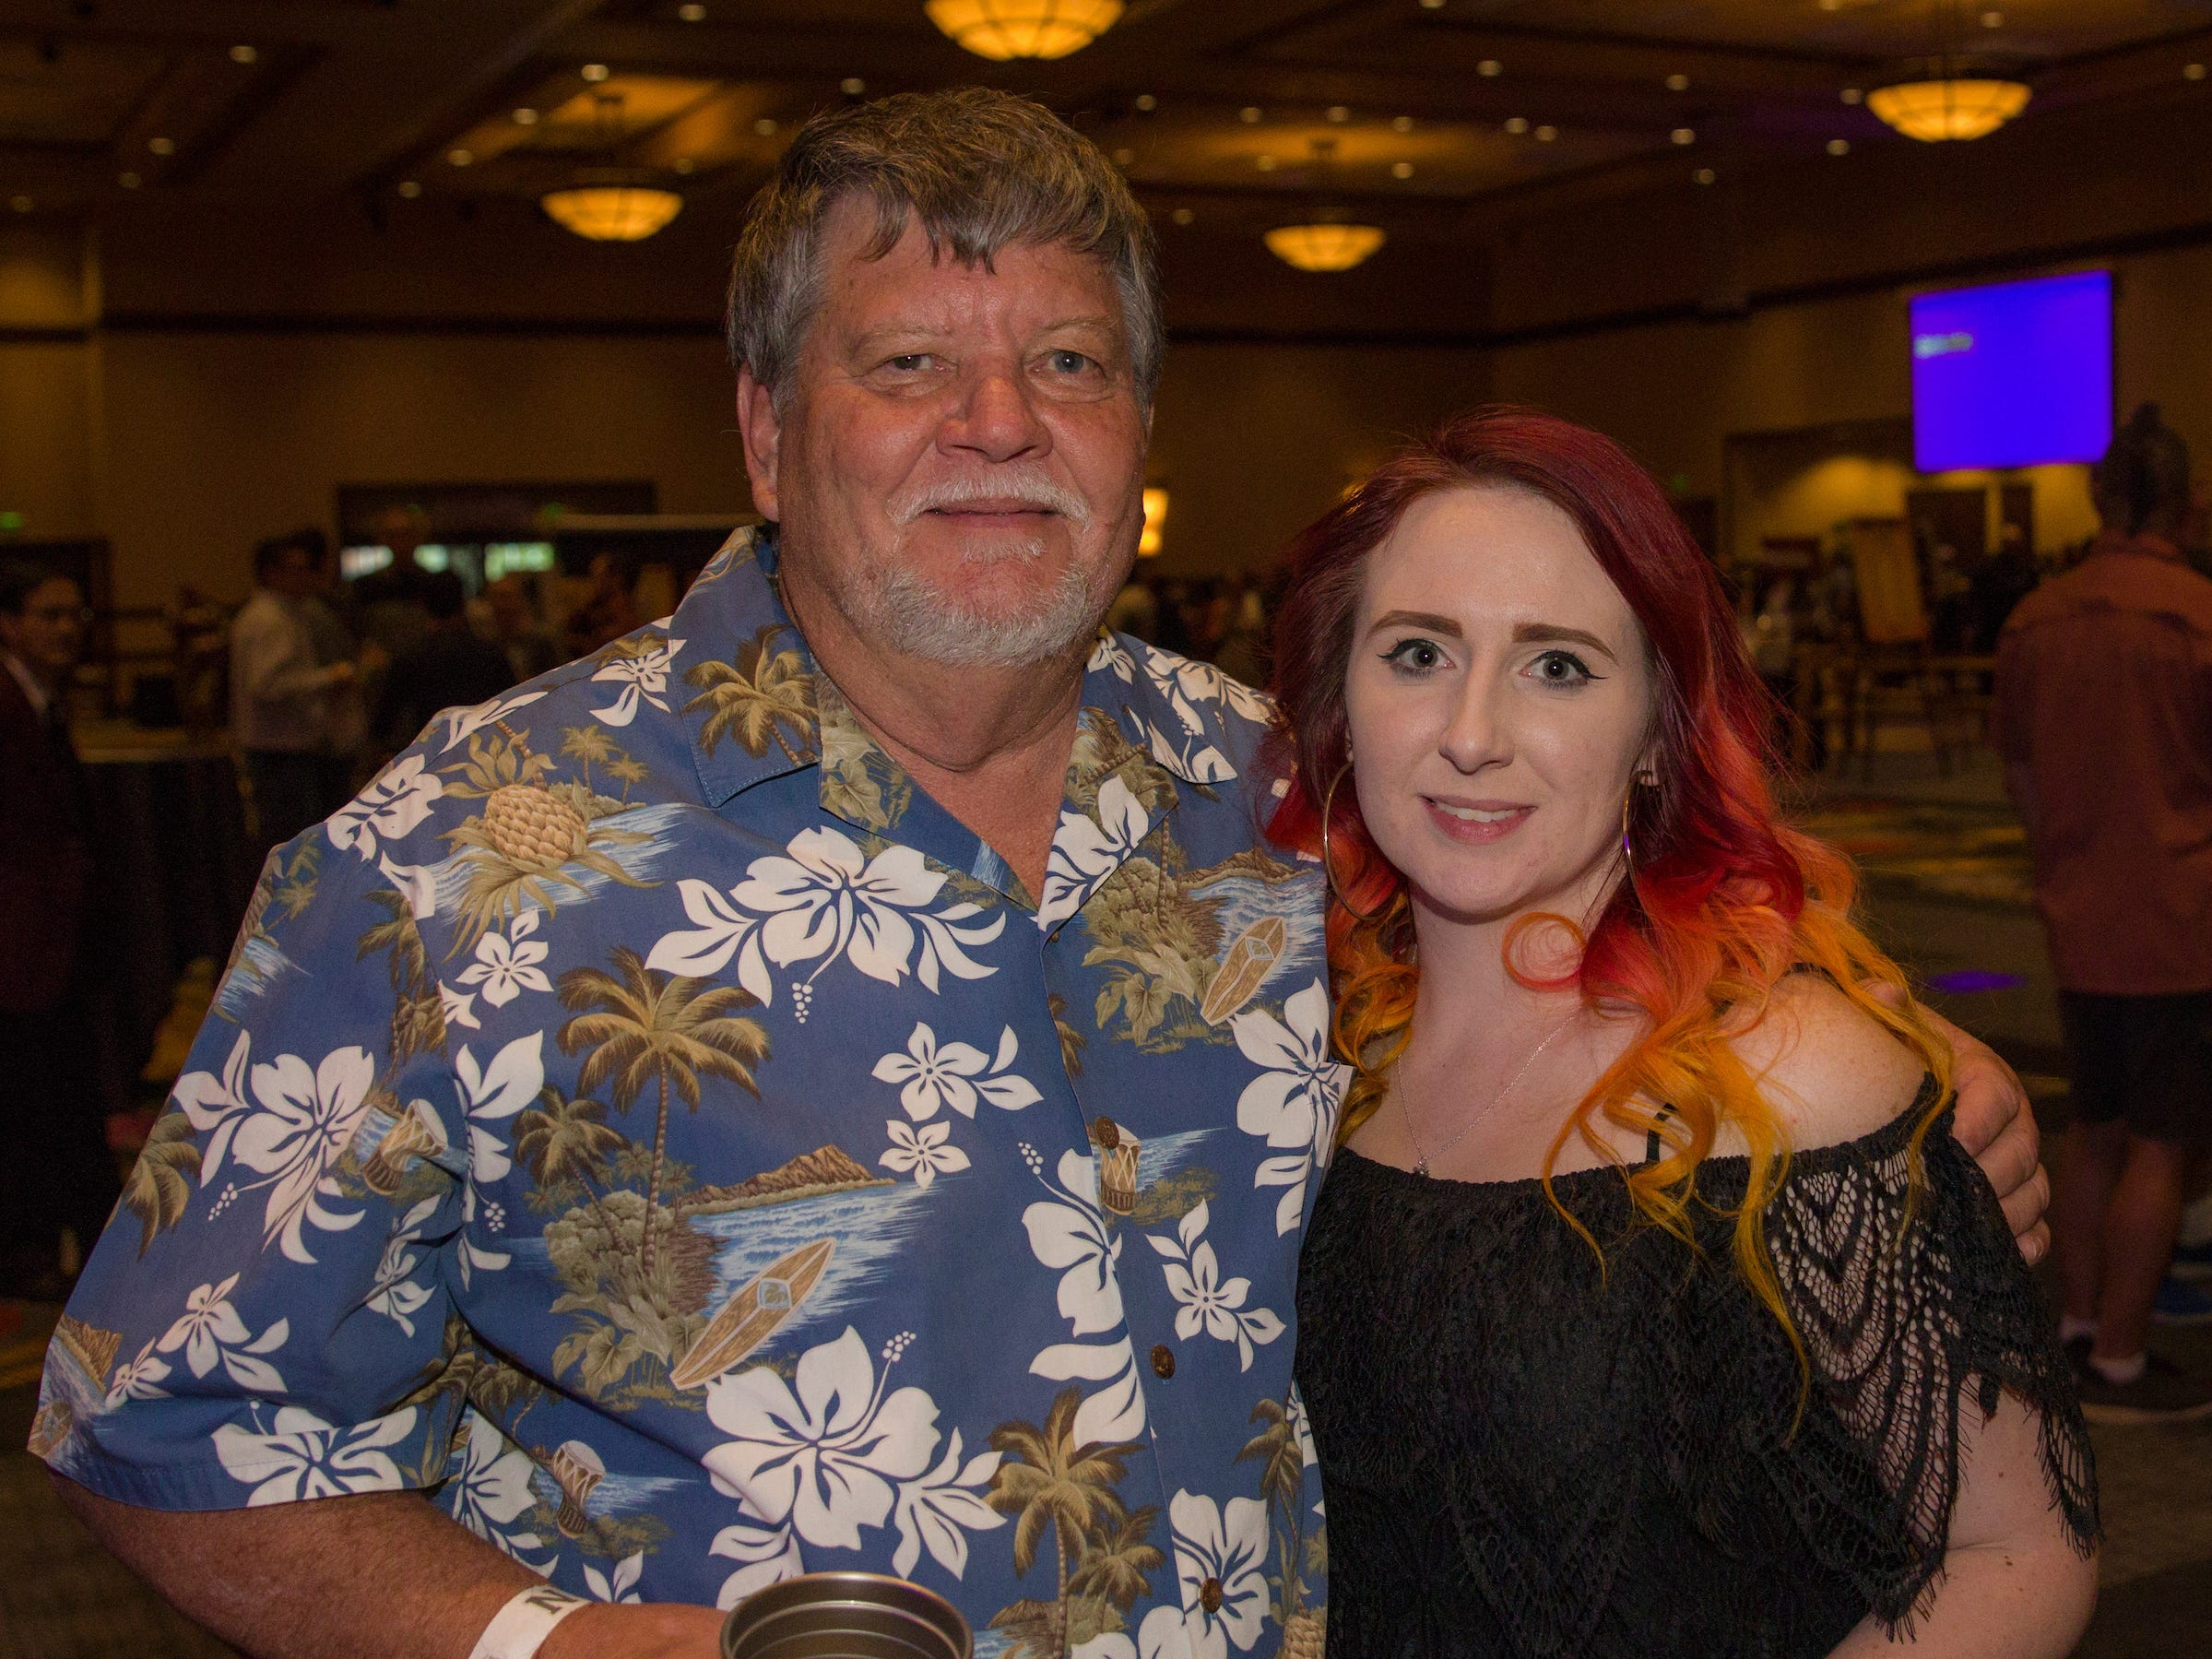 Paul and Caitlyn during the Young Alumni Beer Fest in the Reno Ballroom in downtown Reno on Friday, May 3, 2019.